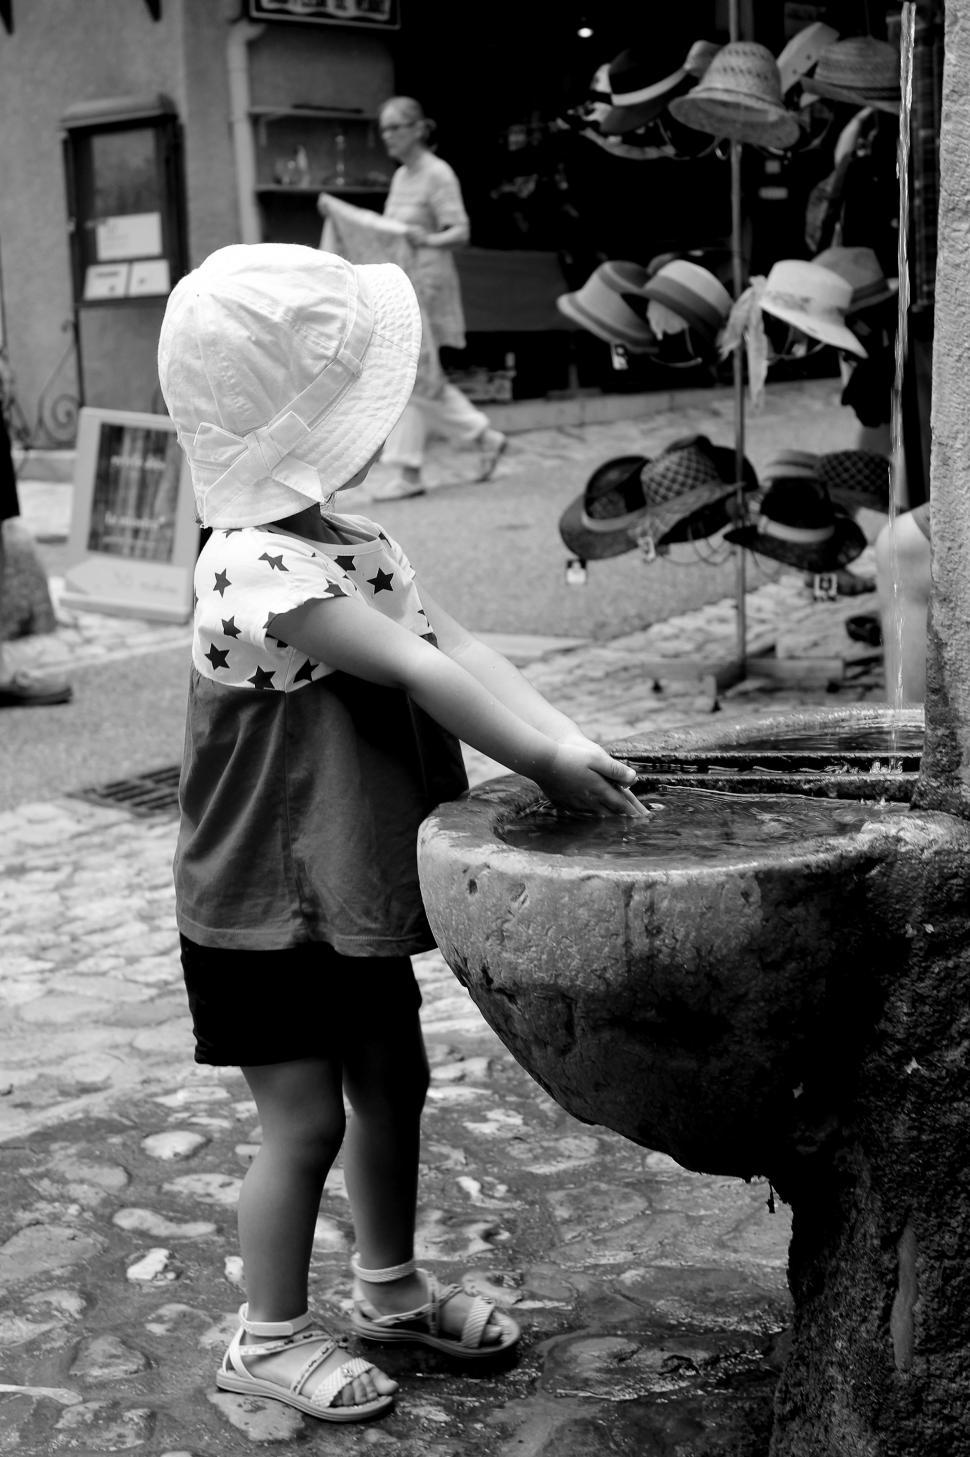 Download Free Stock HD Photo of Toddler washing her hands while observing hats for sale in Moust Online